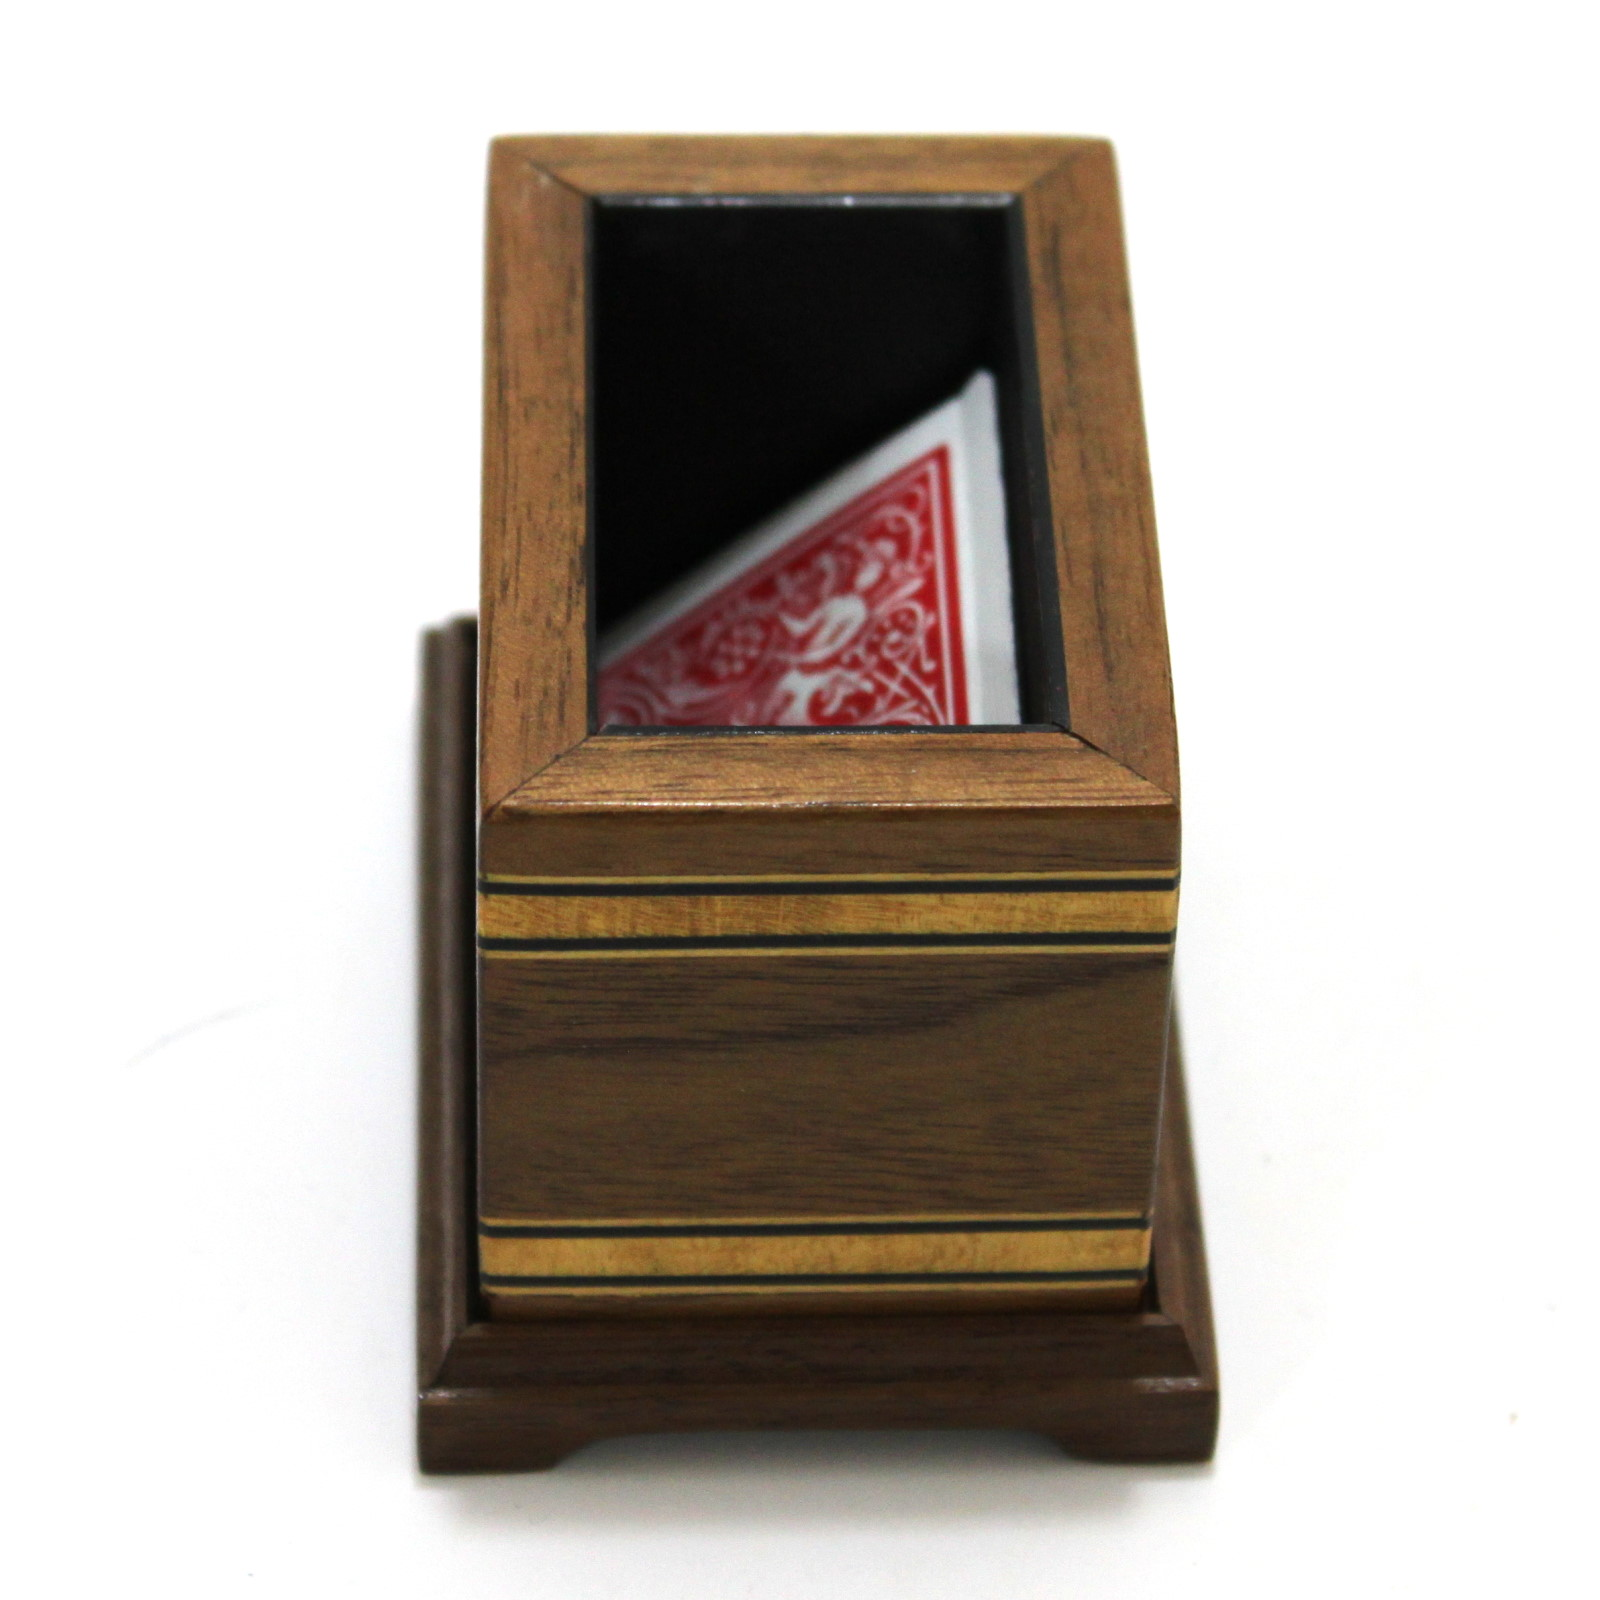 Collector's Mystery Box by Dave Powell